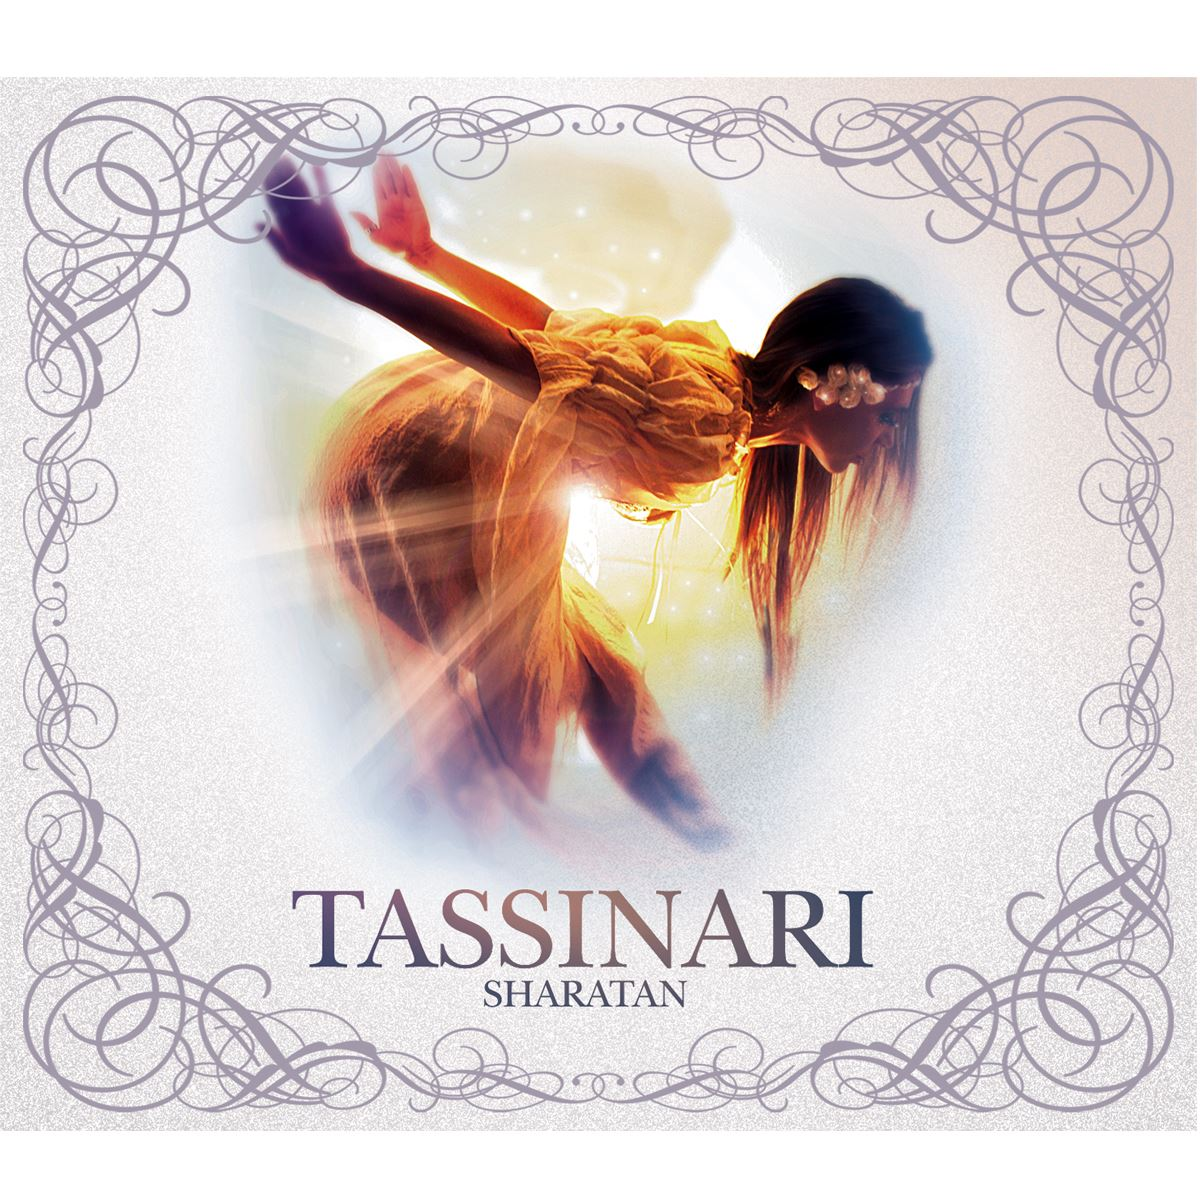 Cd tassinari-sharatan  - Sanborns